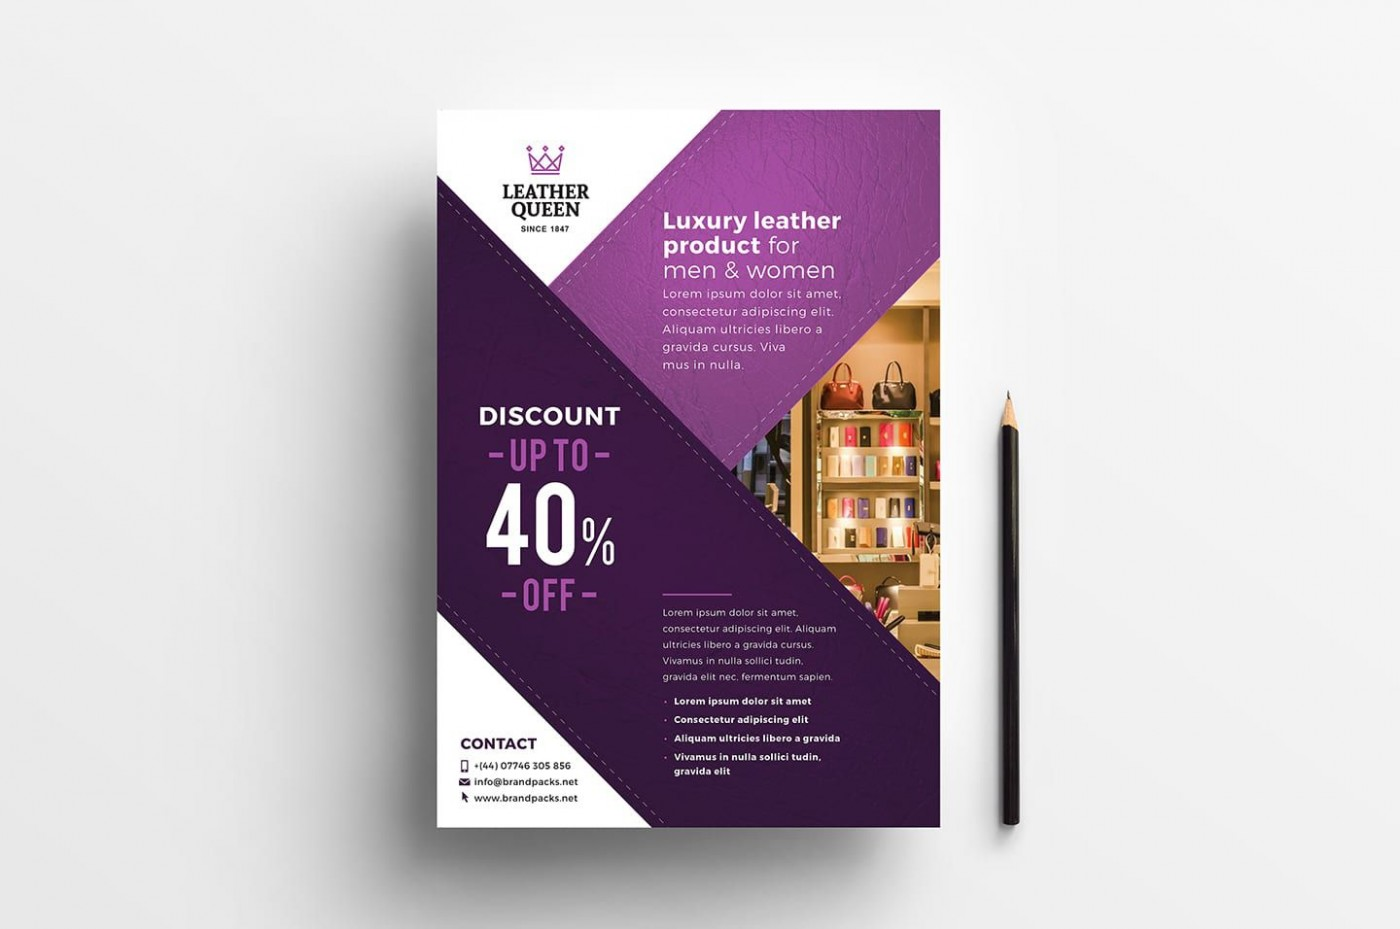 005 Singular Adobe Photoshop Psd Poster Template Free Download Highest Quality 1400